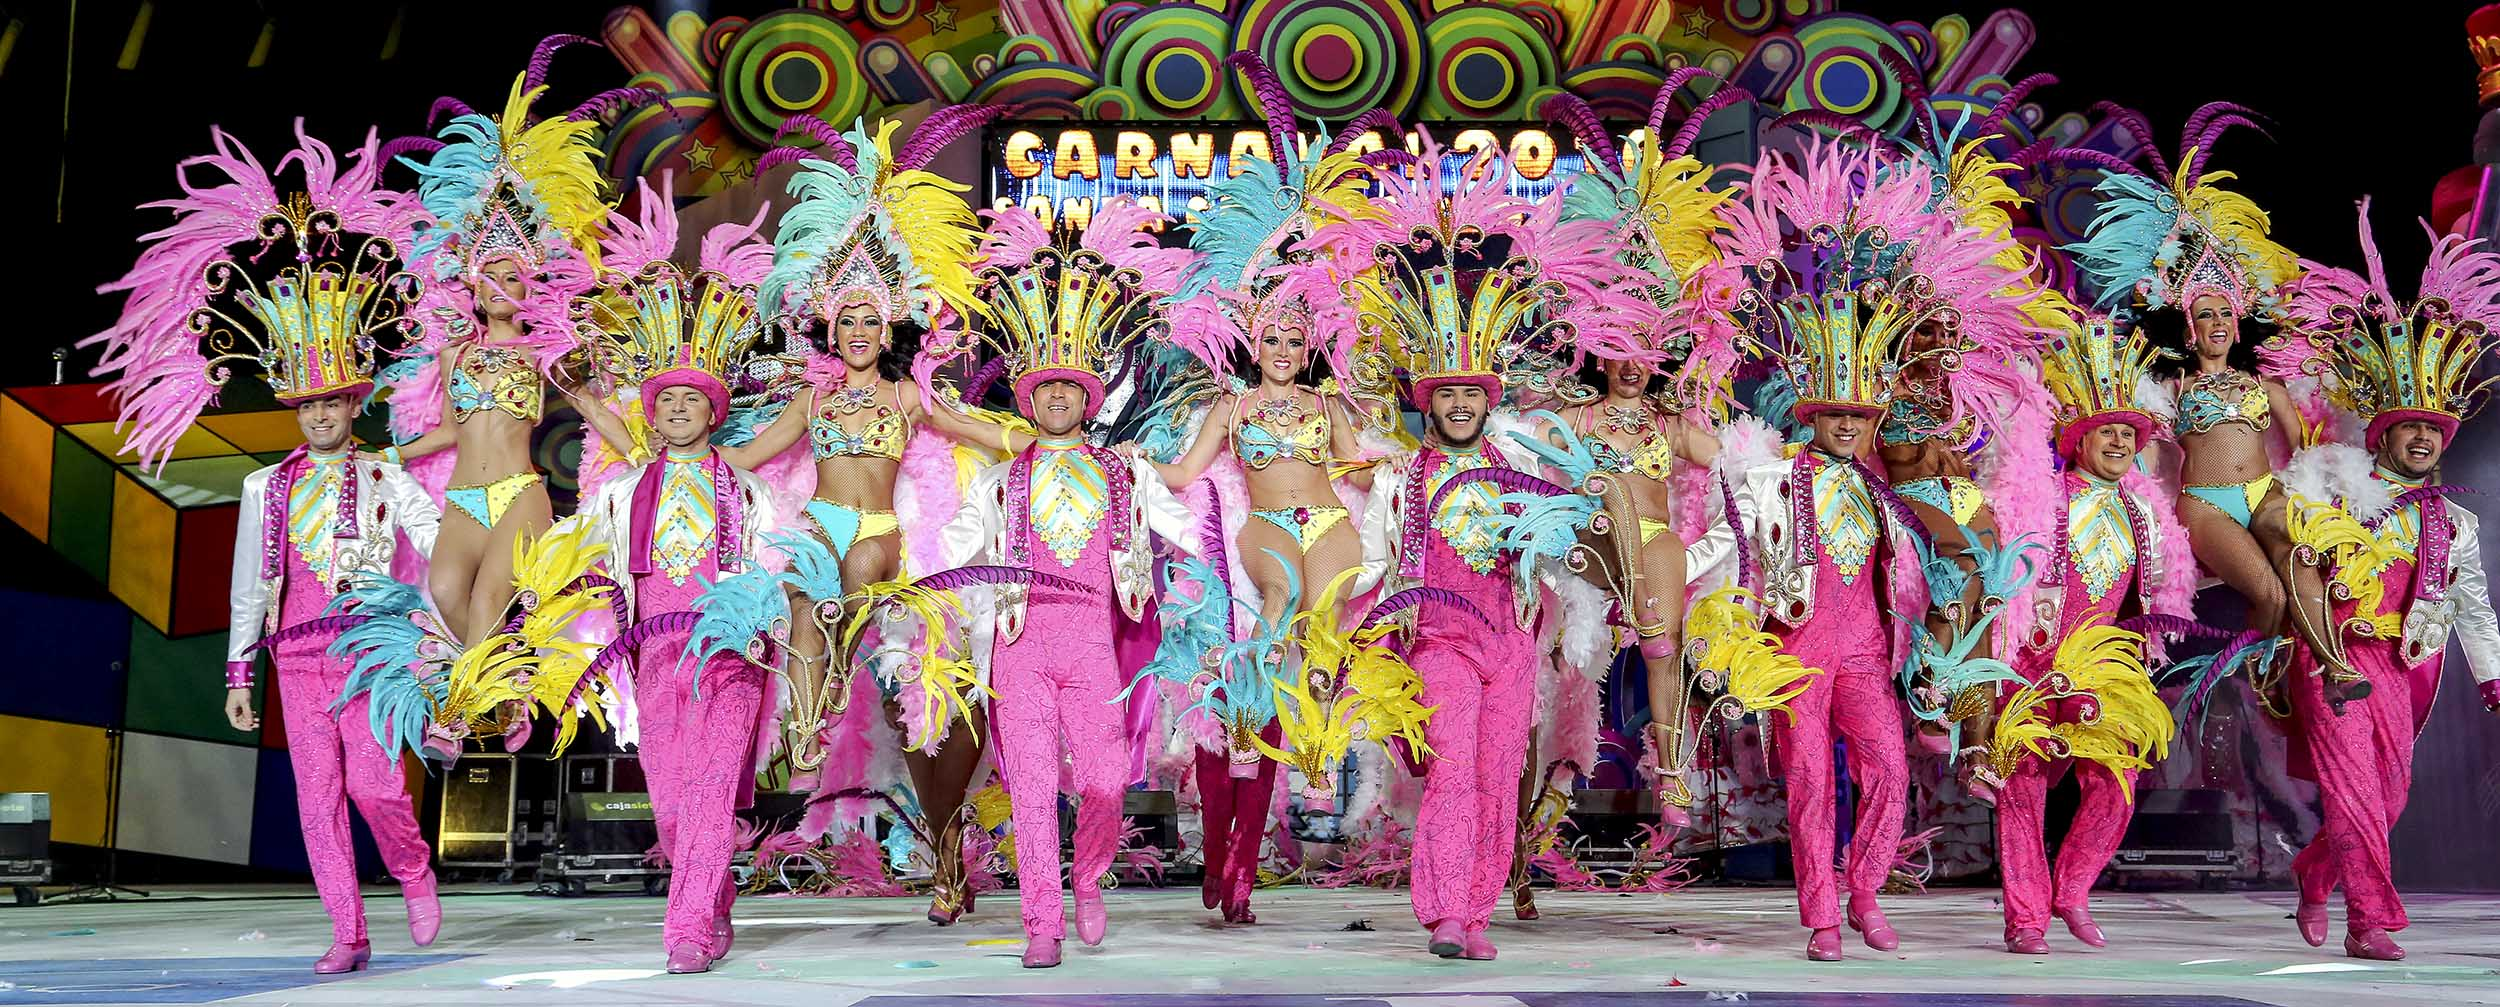 Tenerife carnival stage